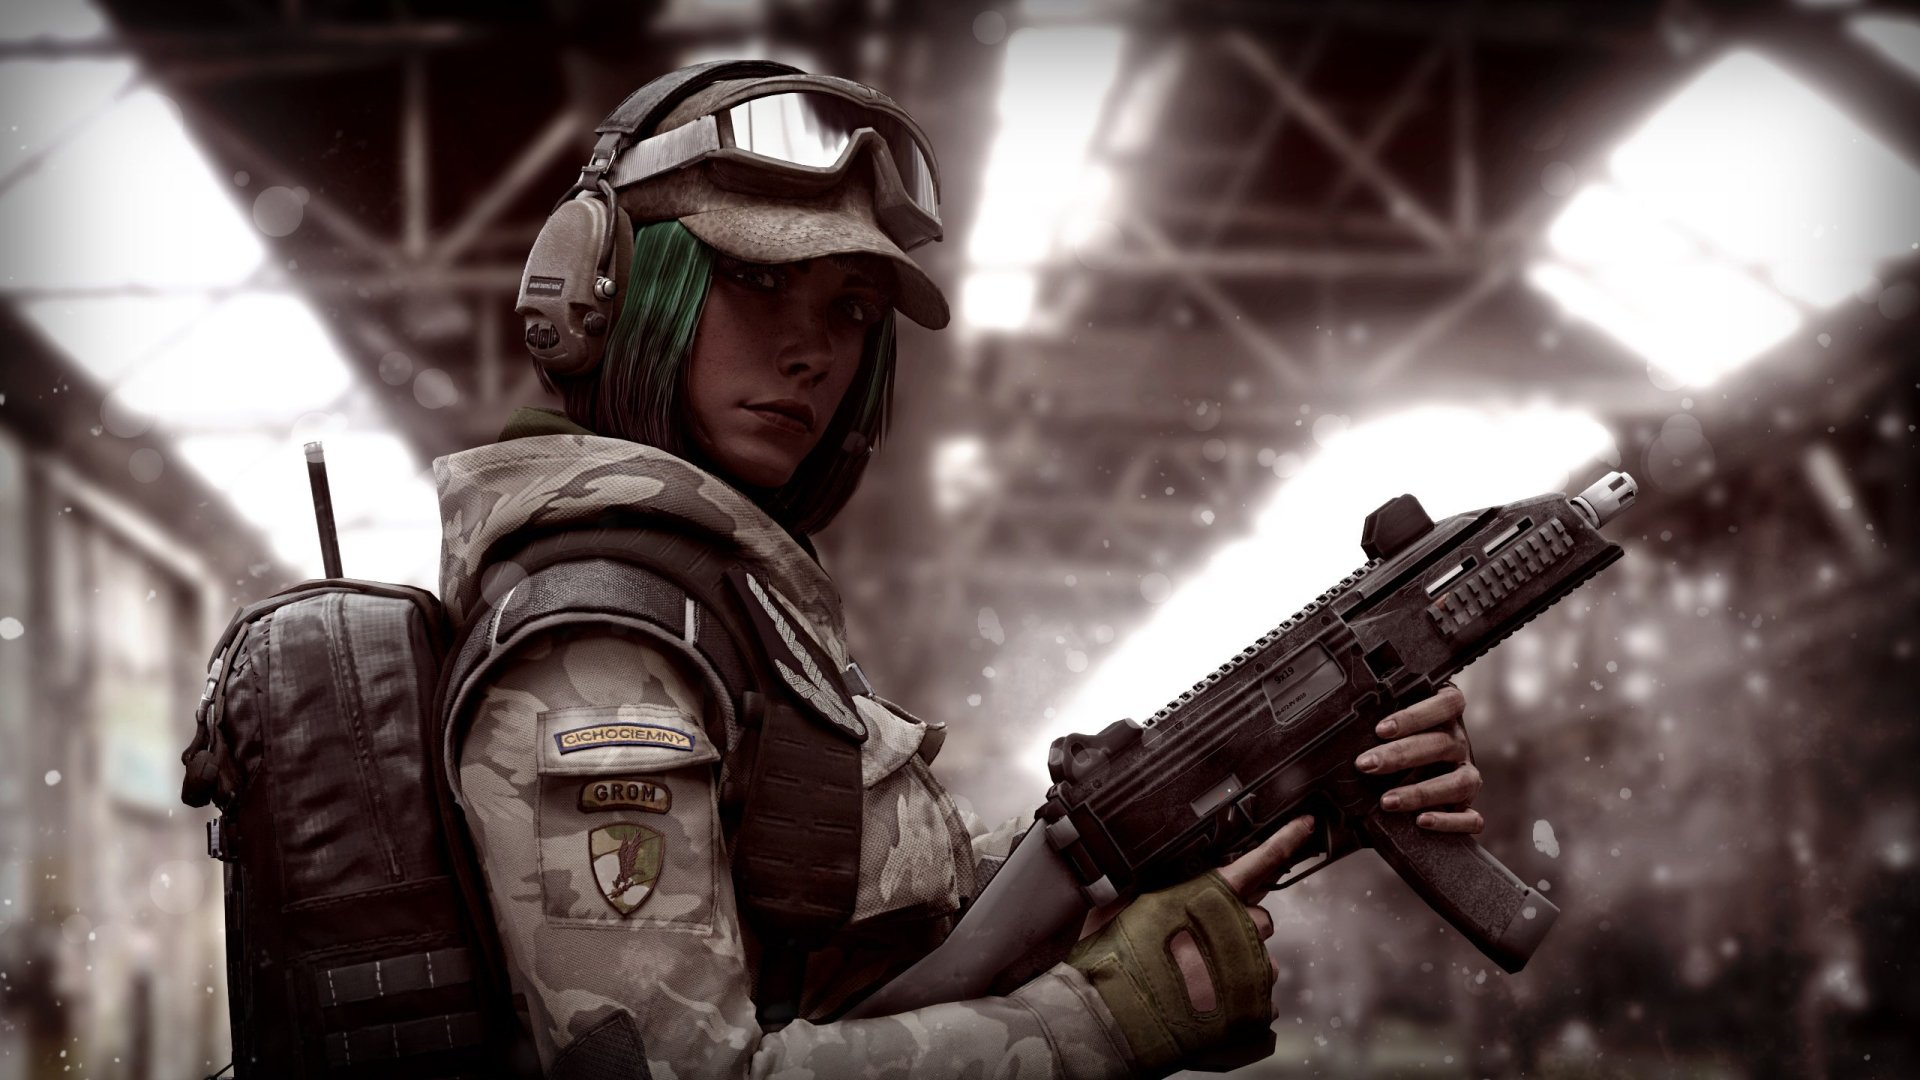 Video Game - Tom Clancy's Rainbow Six: Siege  Ela (Tom Clancy's Rainbow Six: Siege) Wallpaper